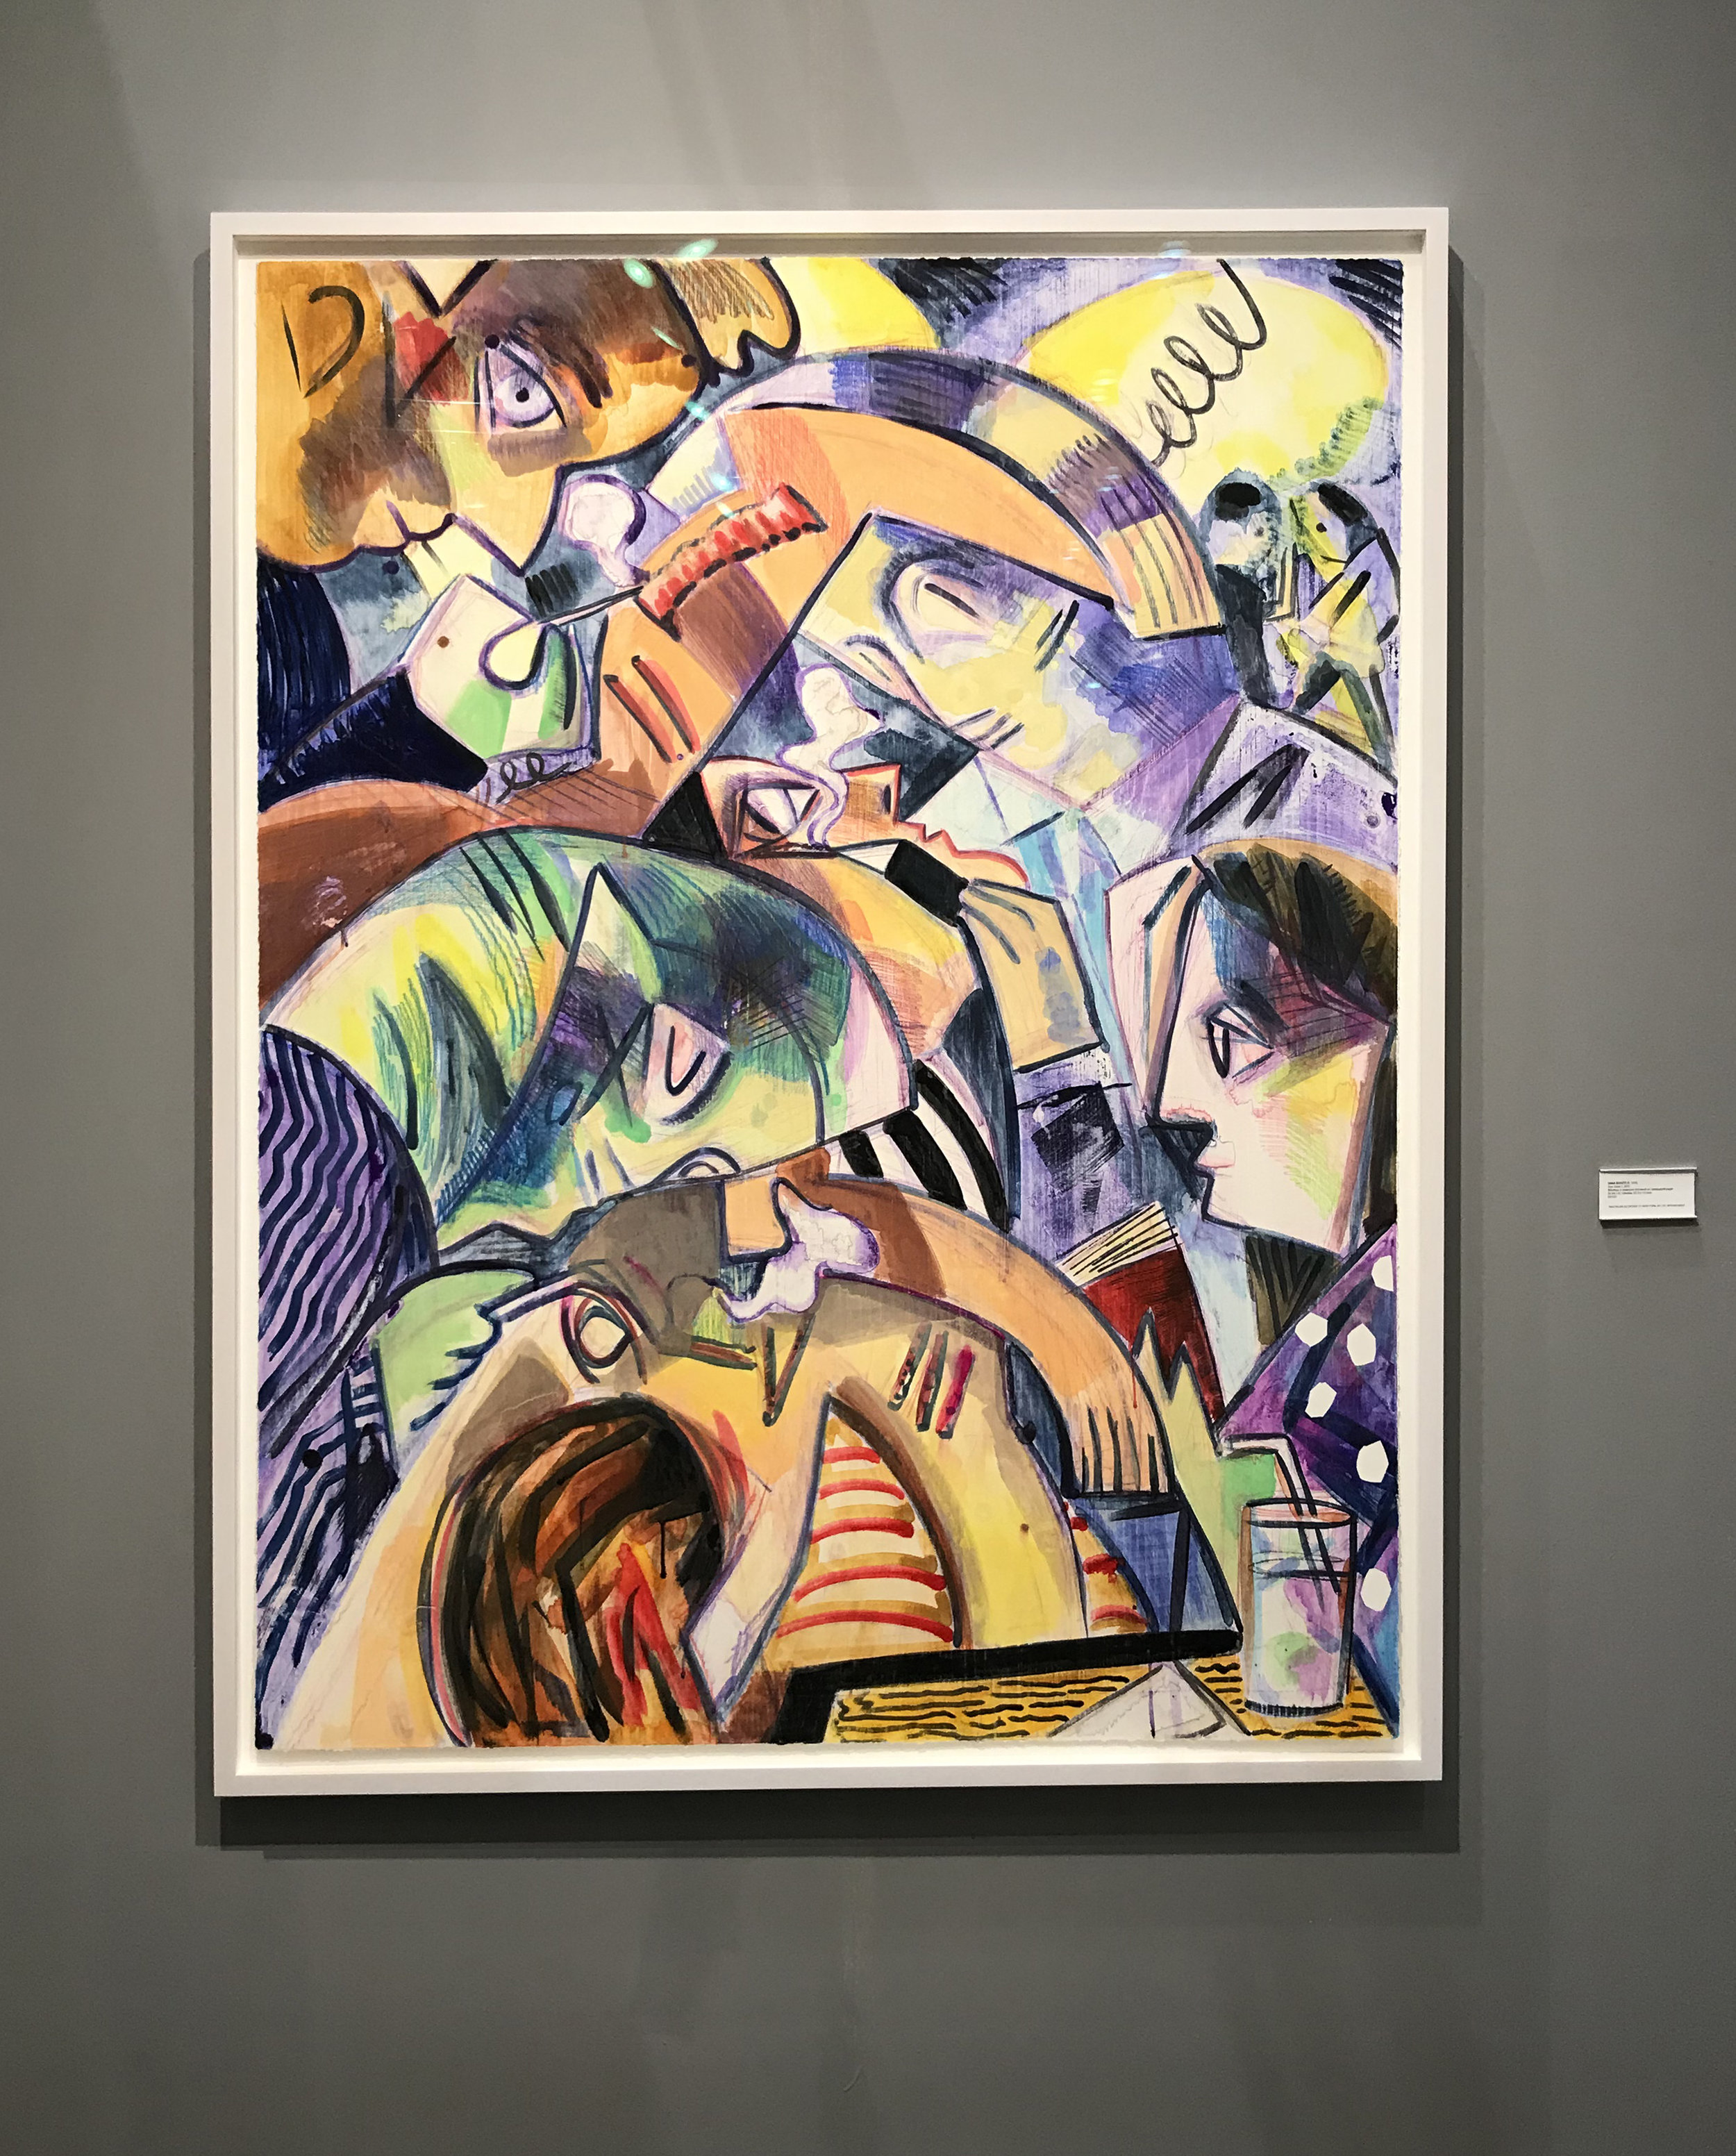 Dana Schutz exhibited by Two Palms Press